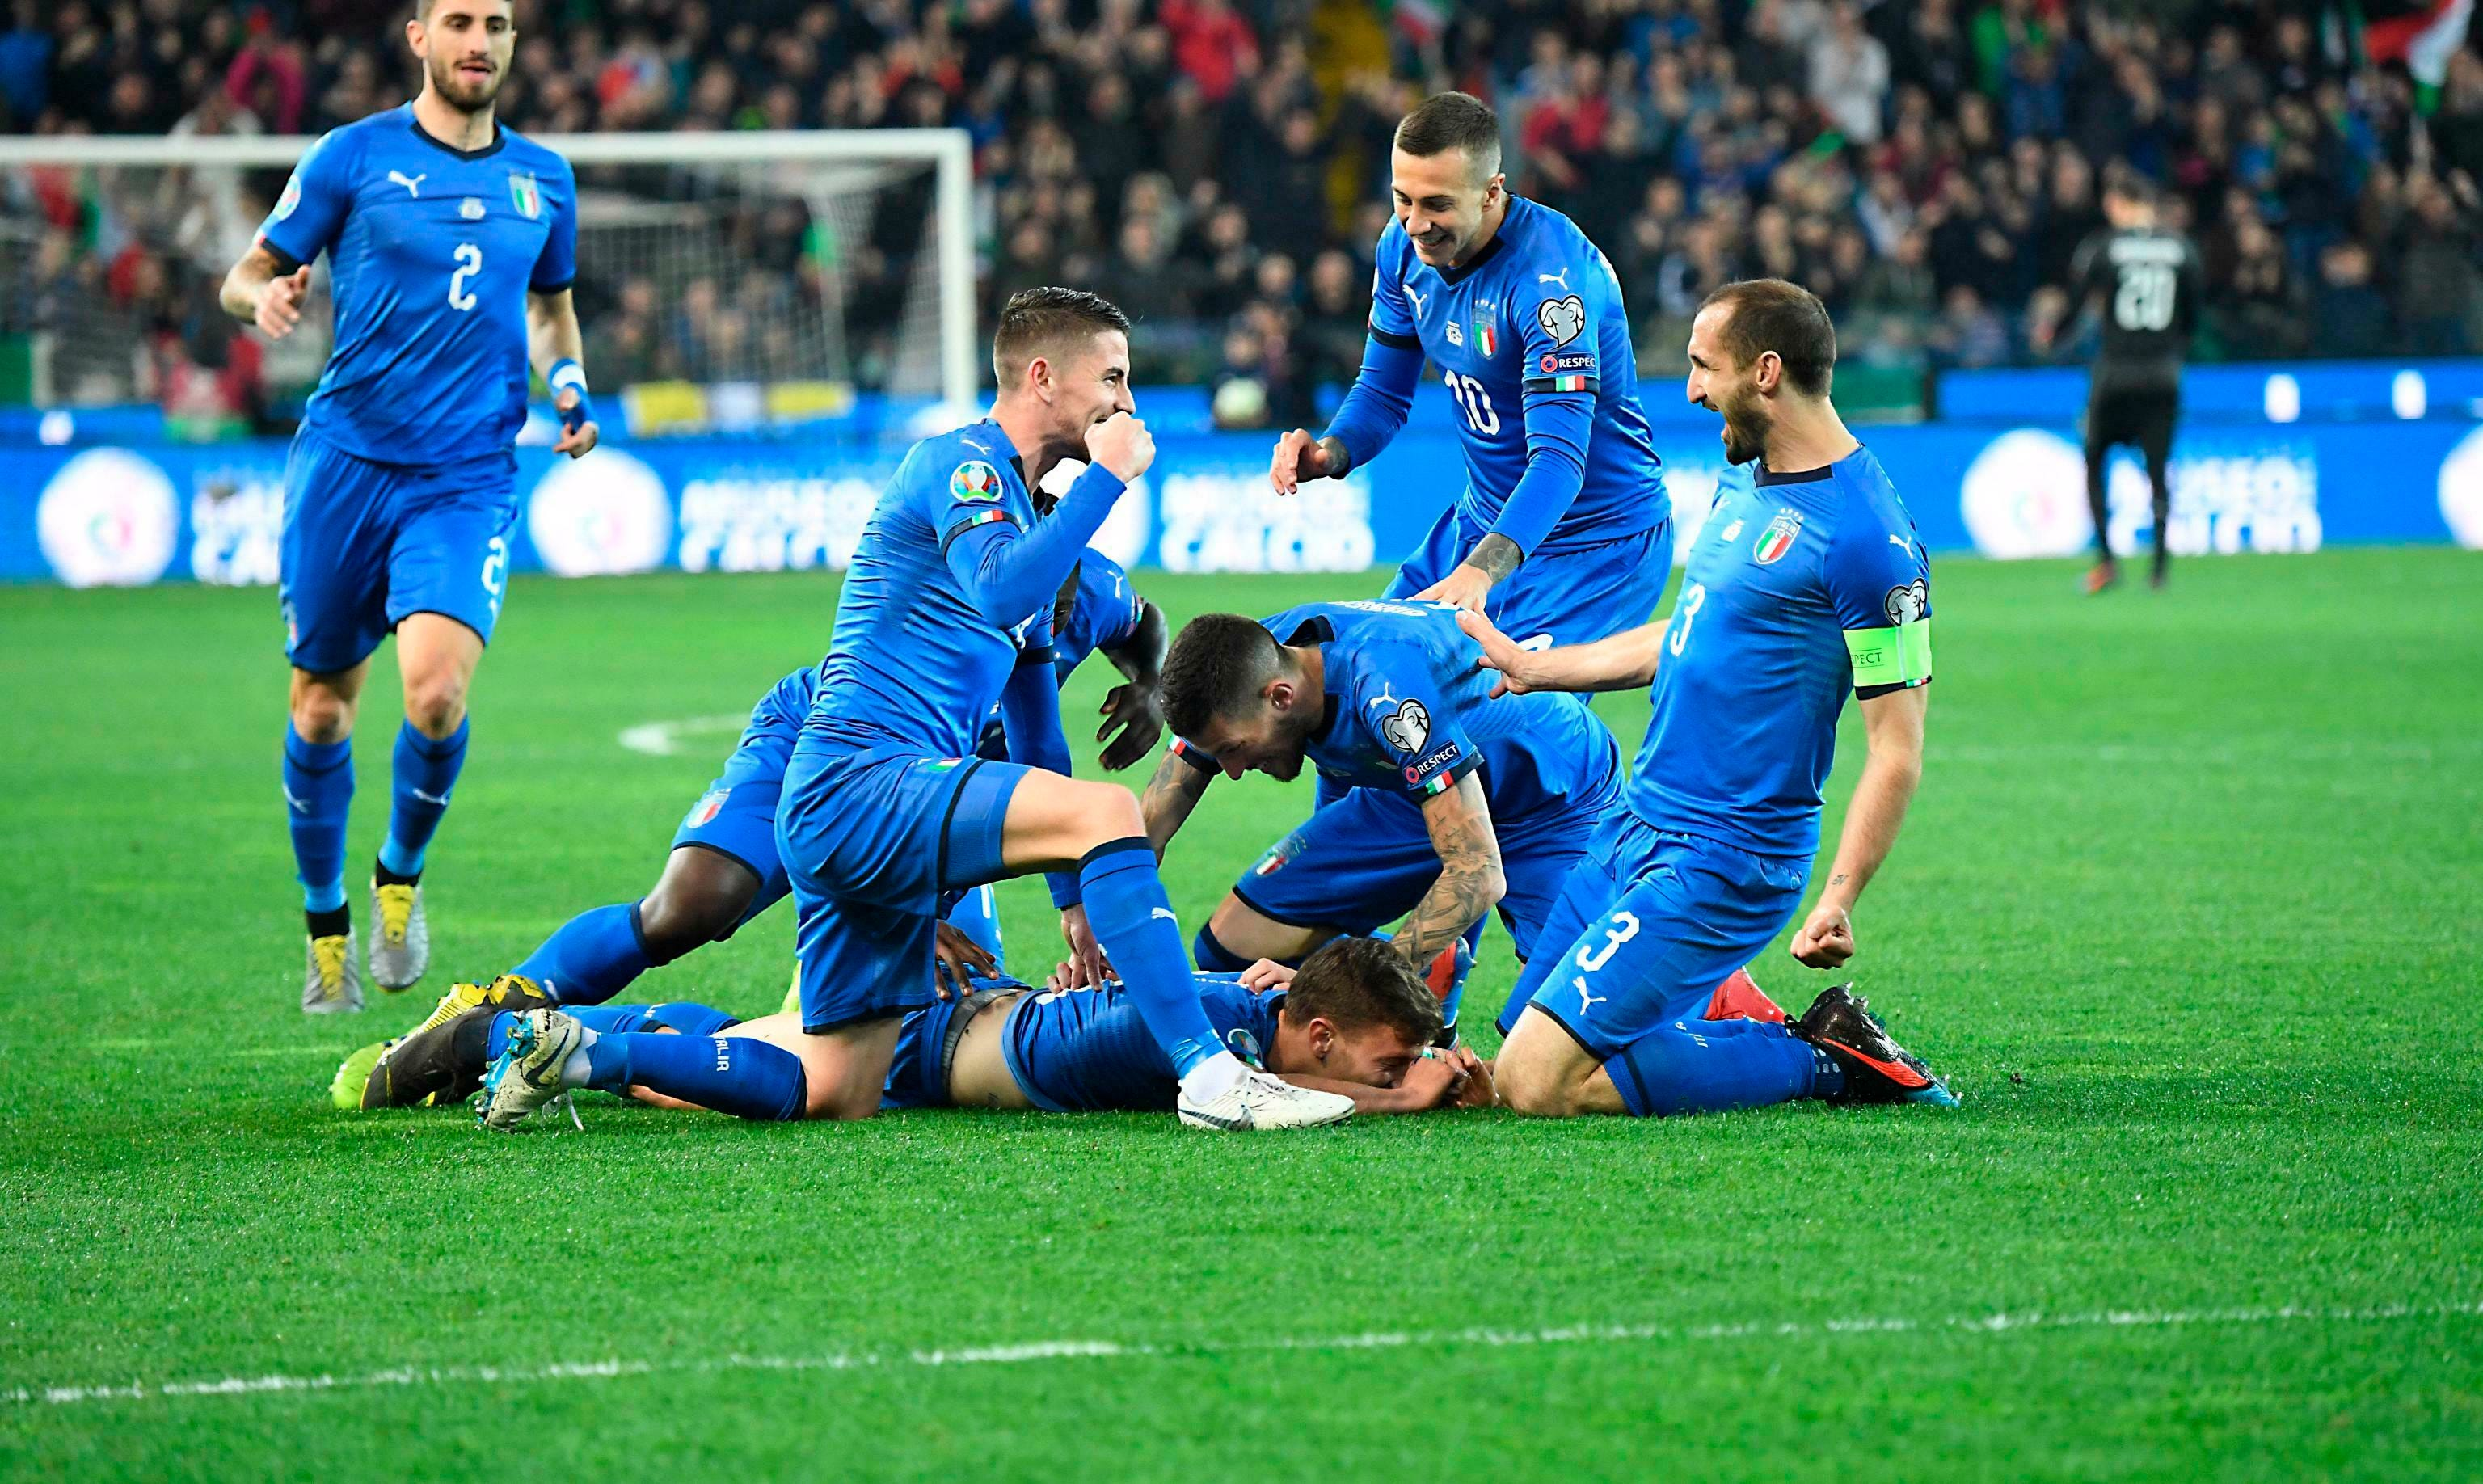 Ronaldo is indirectly helping Italy's national team